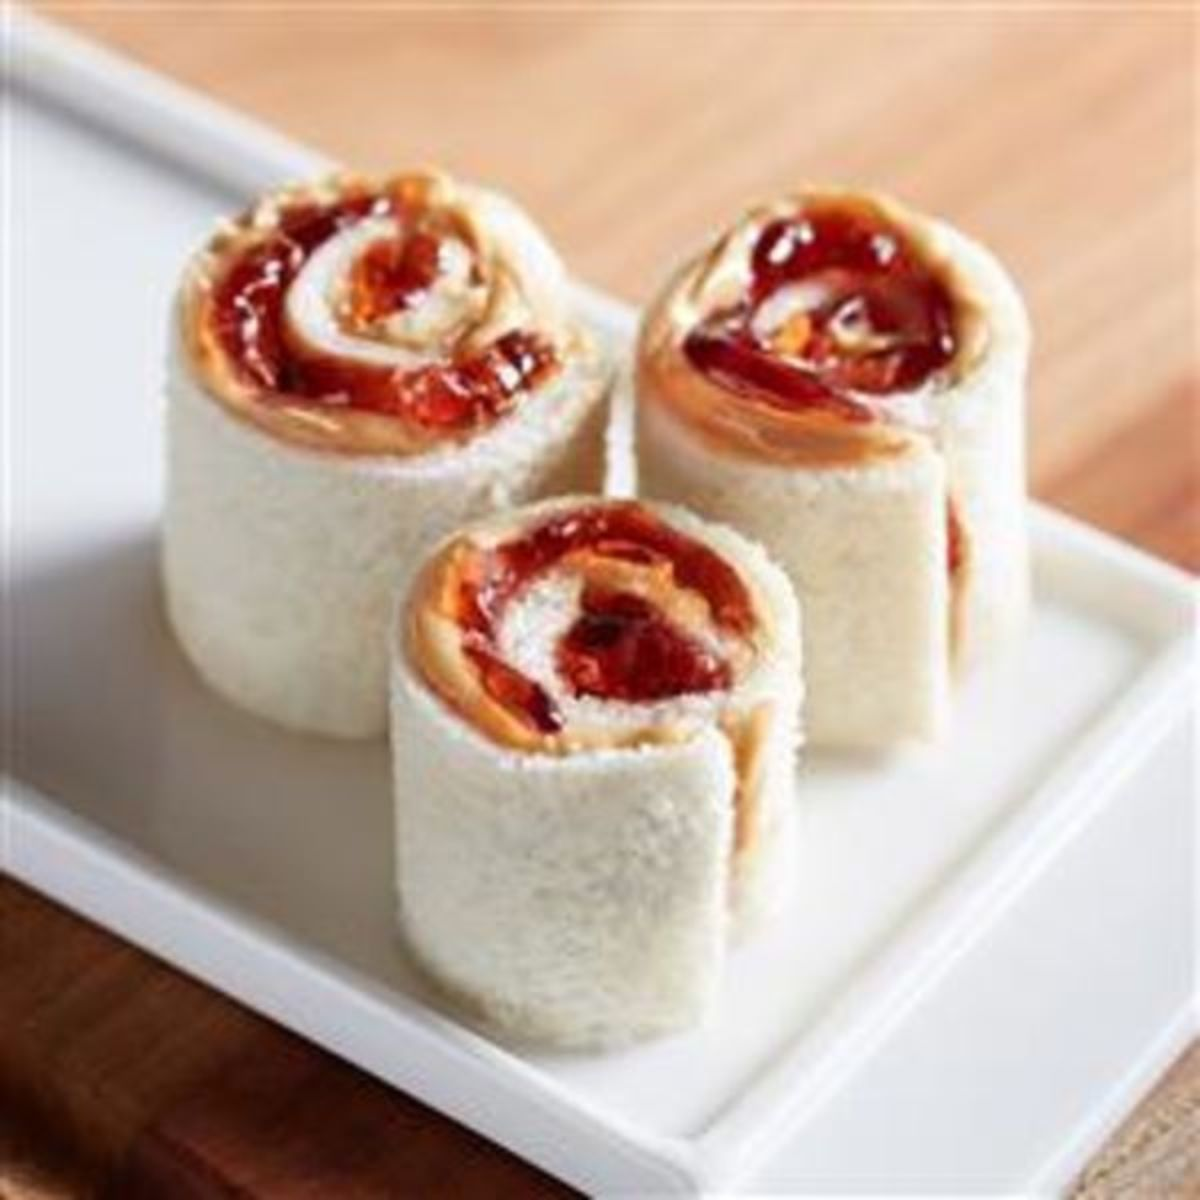 How to Make Peanut Butter and Jelly Sushi Rolls